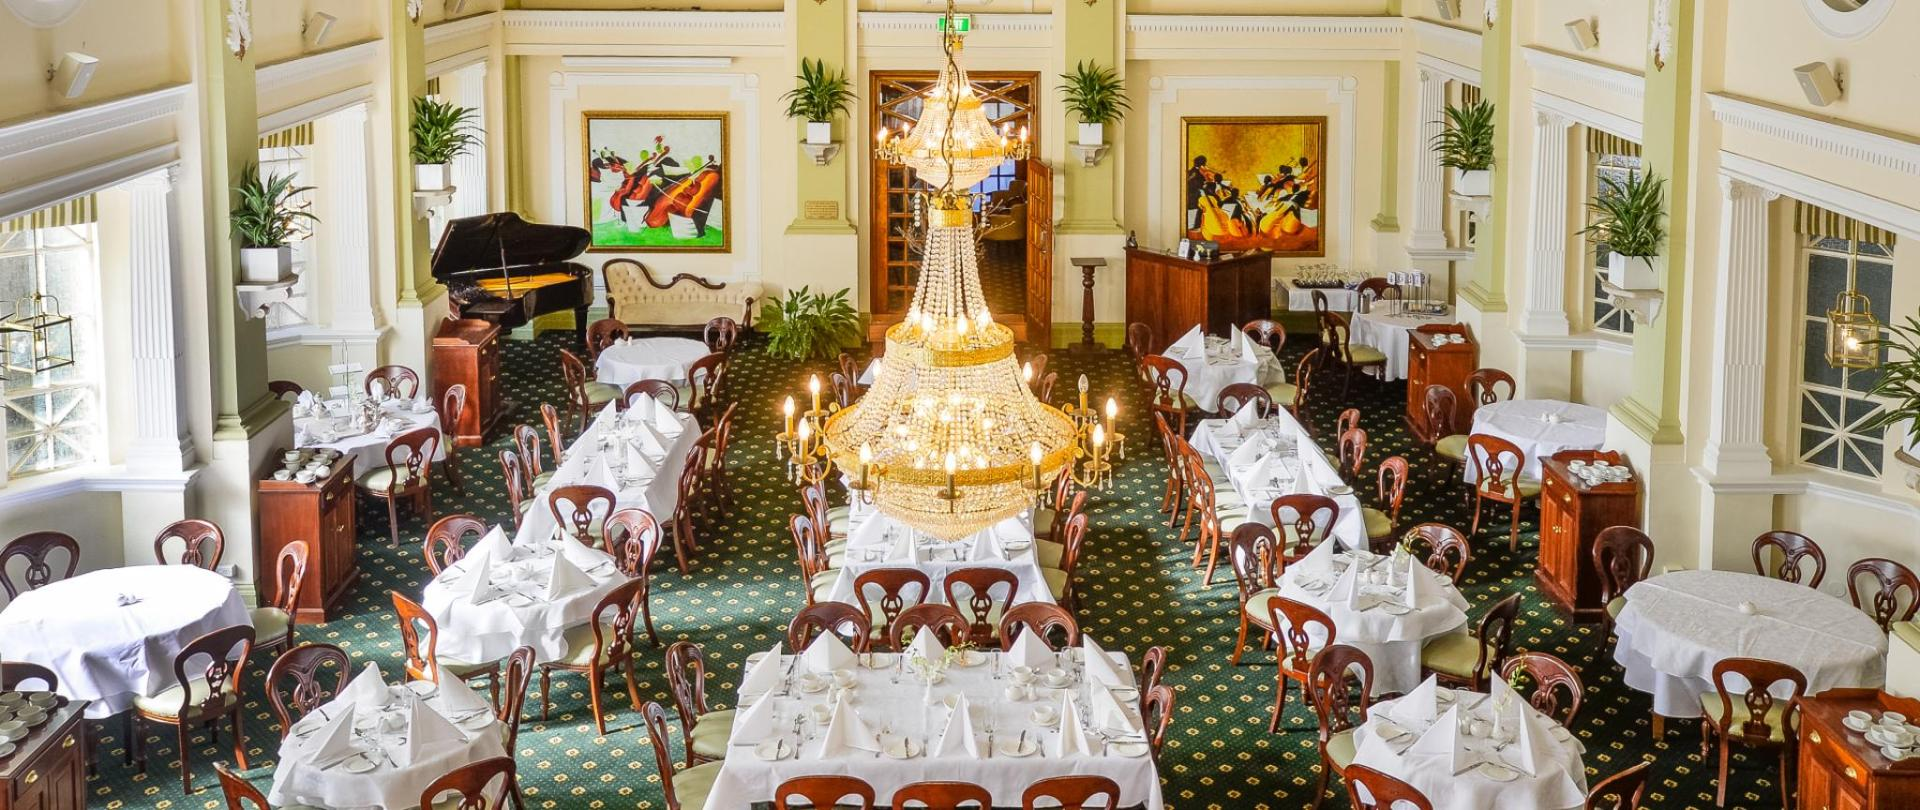 Cellos-Restaurant_Dining_Castlereagh-Boutique-Hotel-Restaurant-Sydney.png